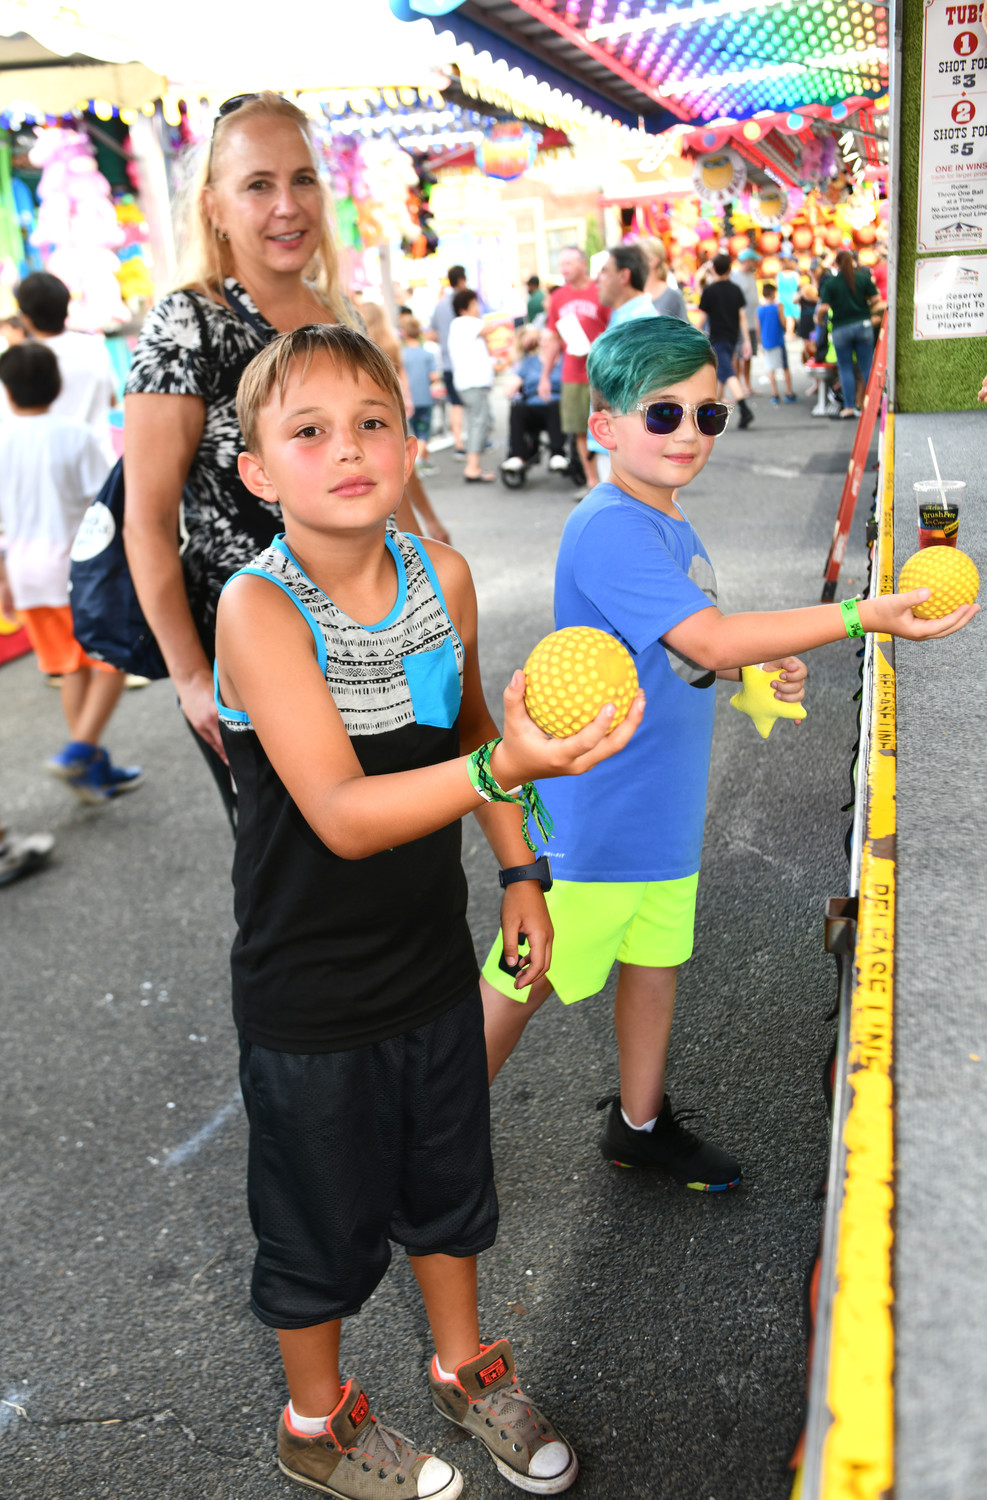 Logan Calamusa and Jacob Adoni tried their luck at a carnival game, supervised by Logan's mother, Katia.